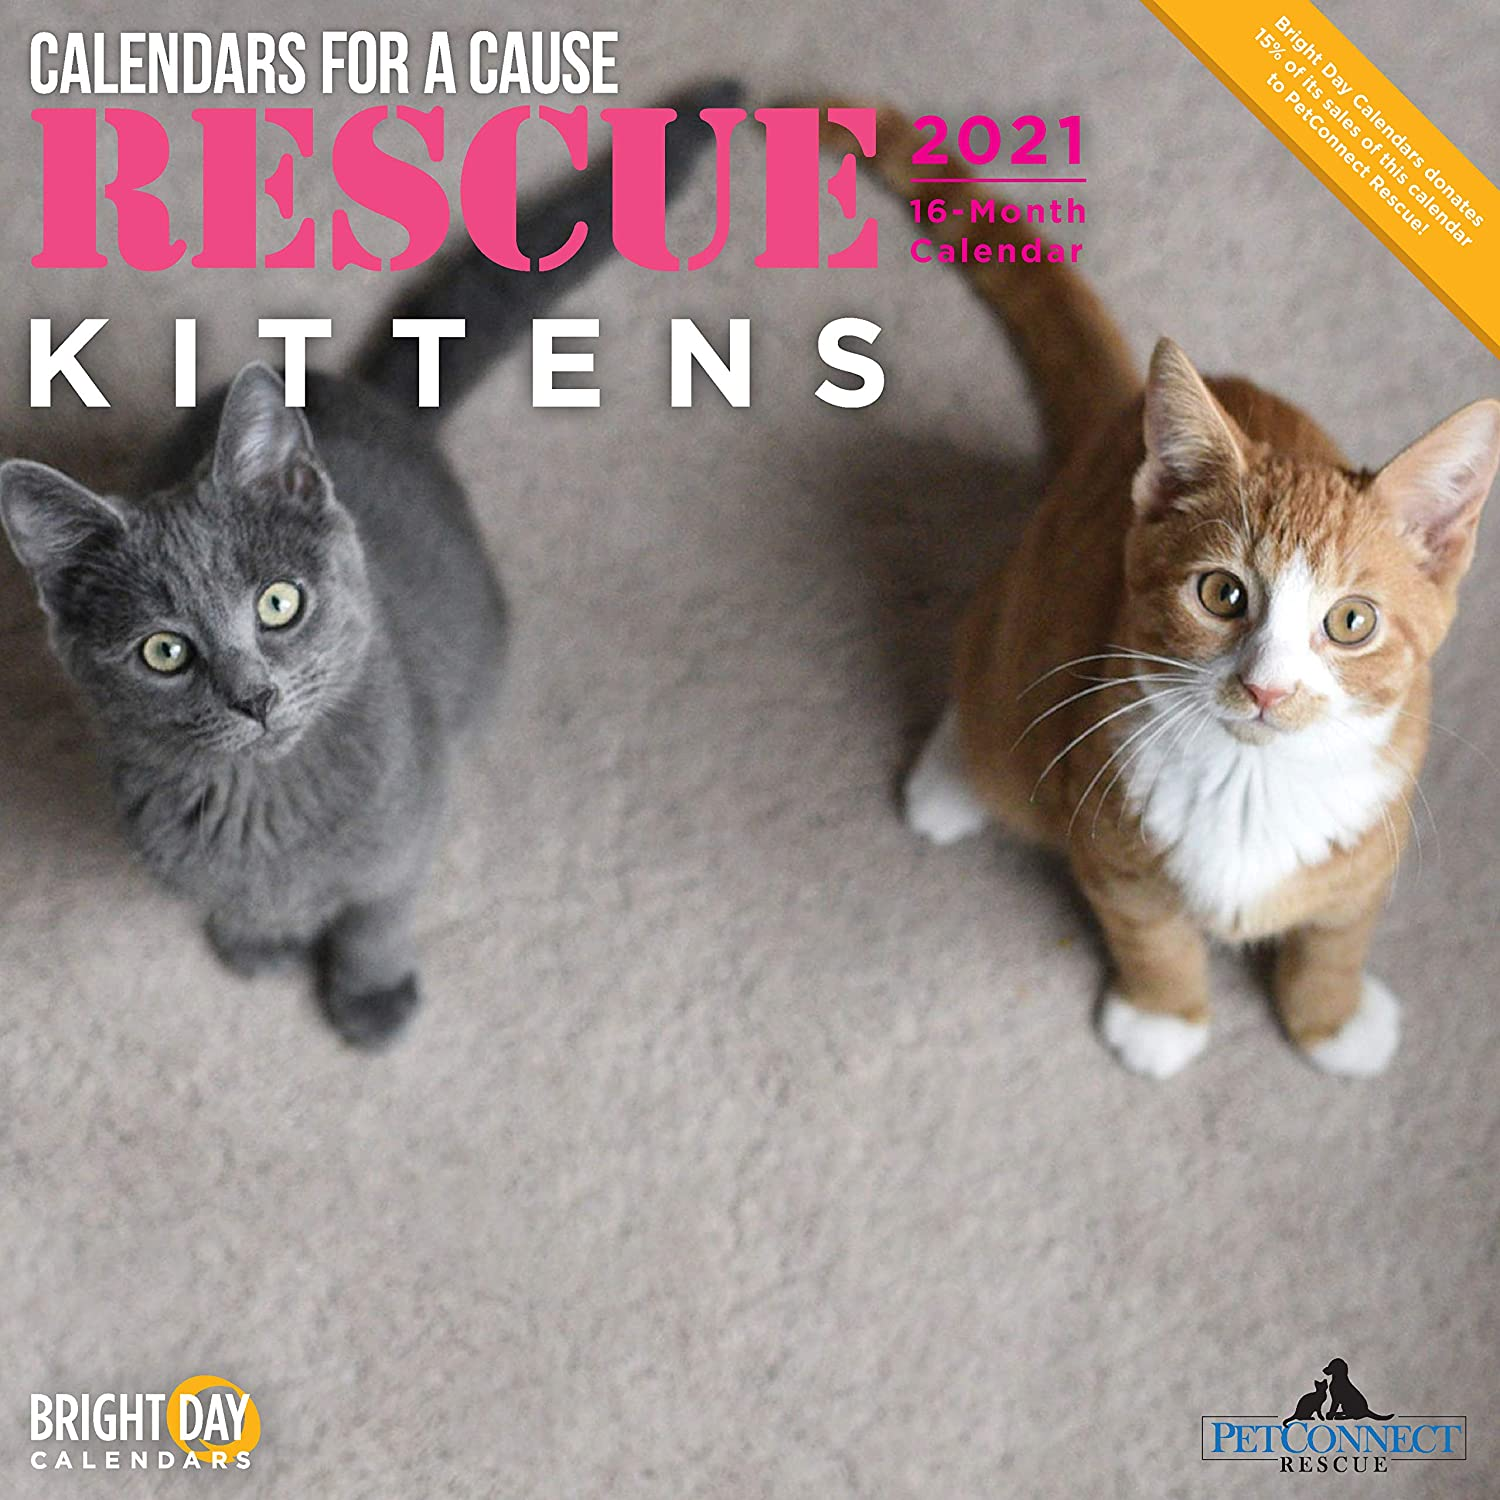 2021 Rescue Kittens Wall Calendar by Bright Day, 12 x 12 Inch, Cute Cats Calendars for a Cause